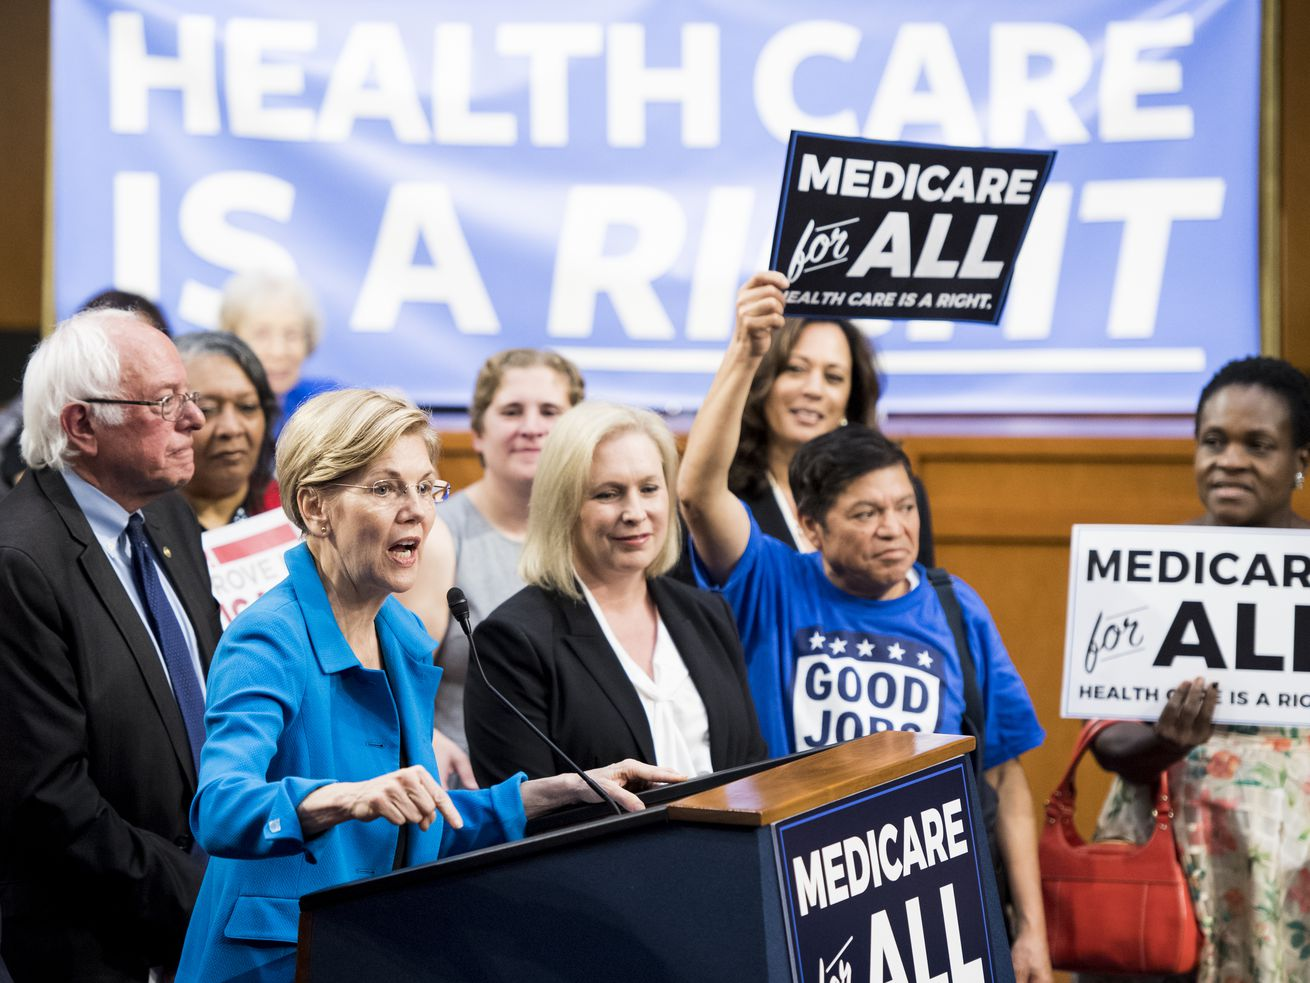 Presidential candidates Bernie Sanders (left), Elizabeth Warren (second from left), Kirsten Gillibrand (front, third from left), and Kamala Harris (back, second from right) rally in favor of Medicare-for-all in 2017.